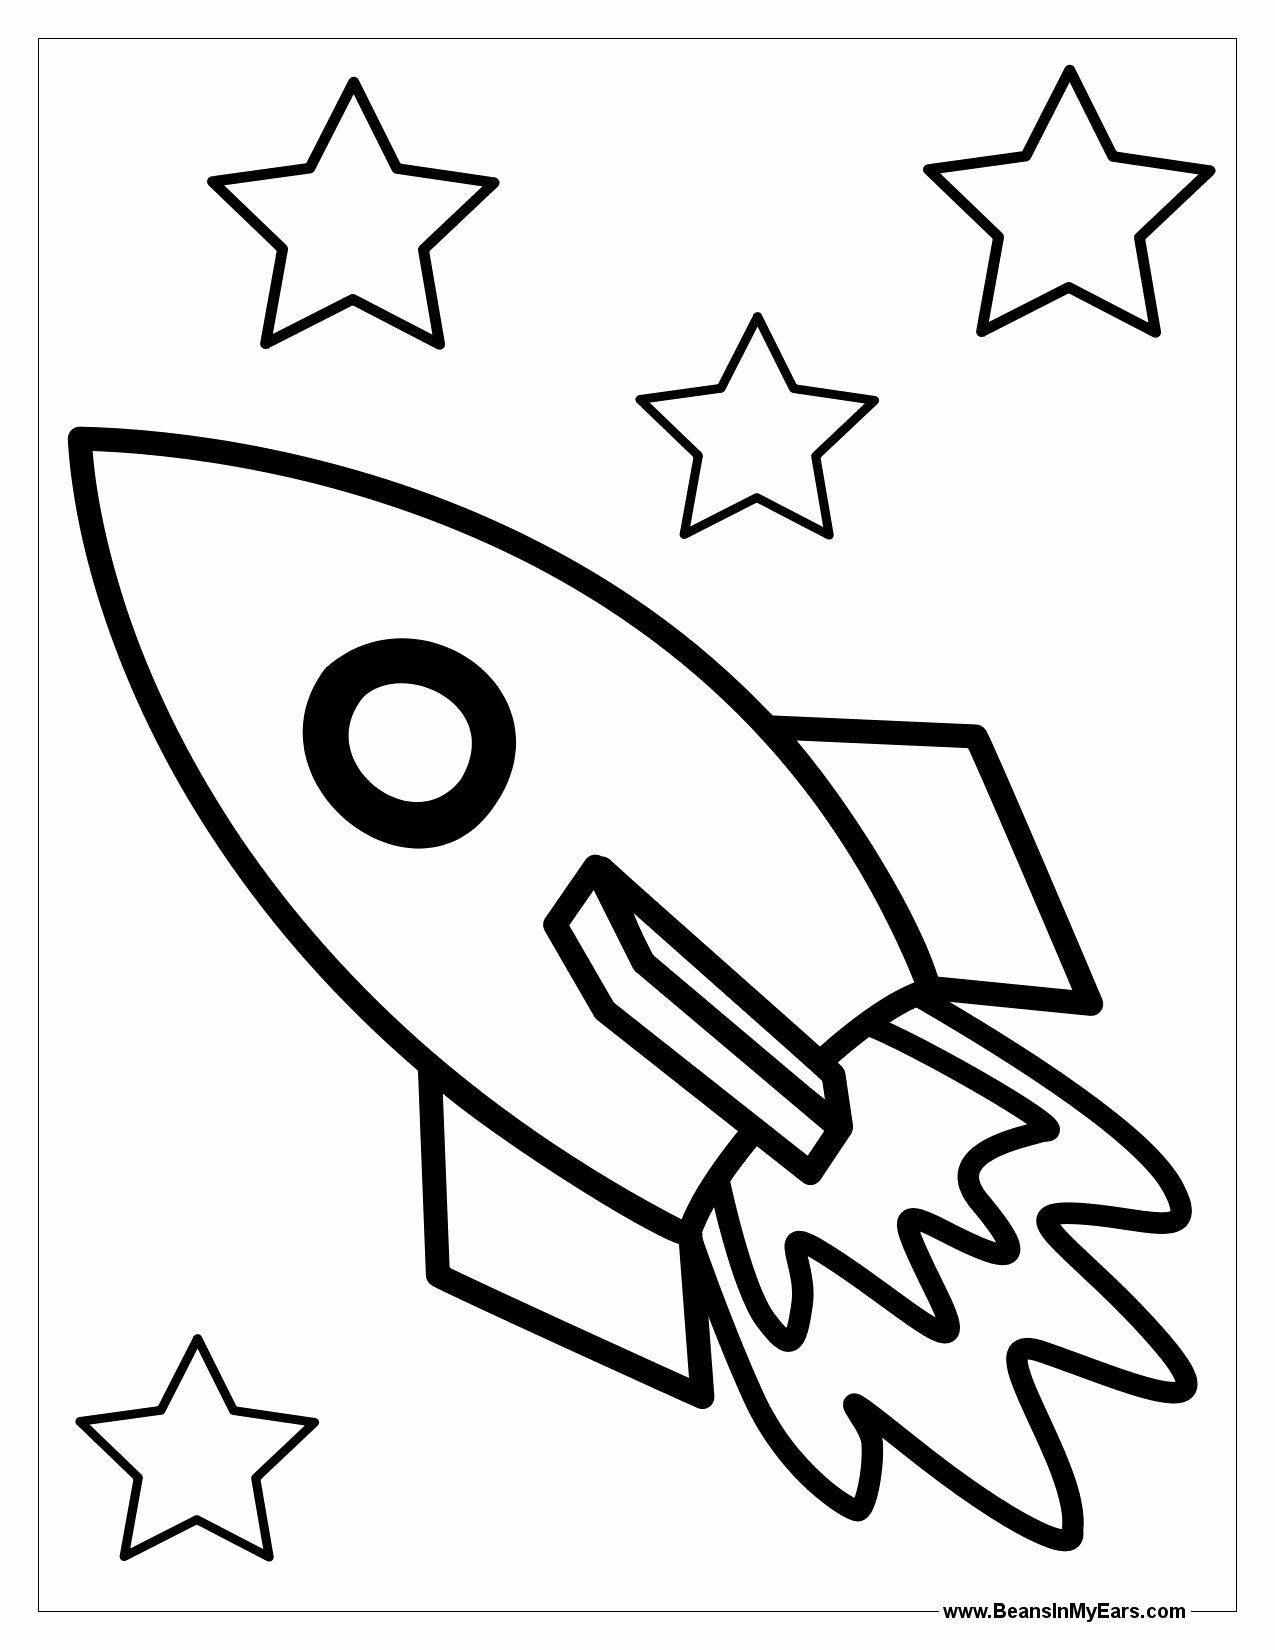 Pin By Merly Diaz On Coloring Pages Rocket Coloring Sheet Space Coloring Pages Easy Coloring Pages [ 1650 x 1275 Pixel ]